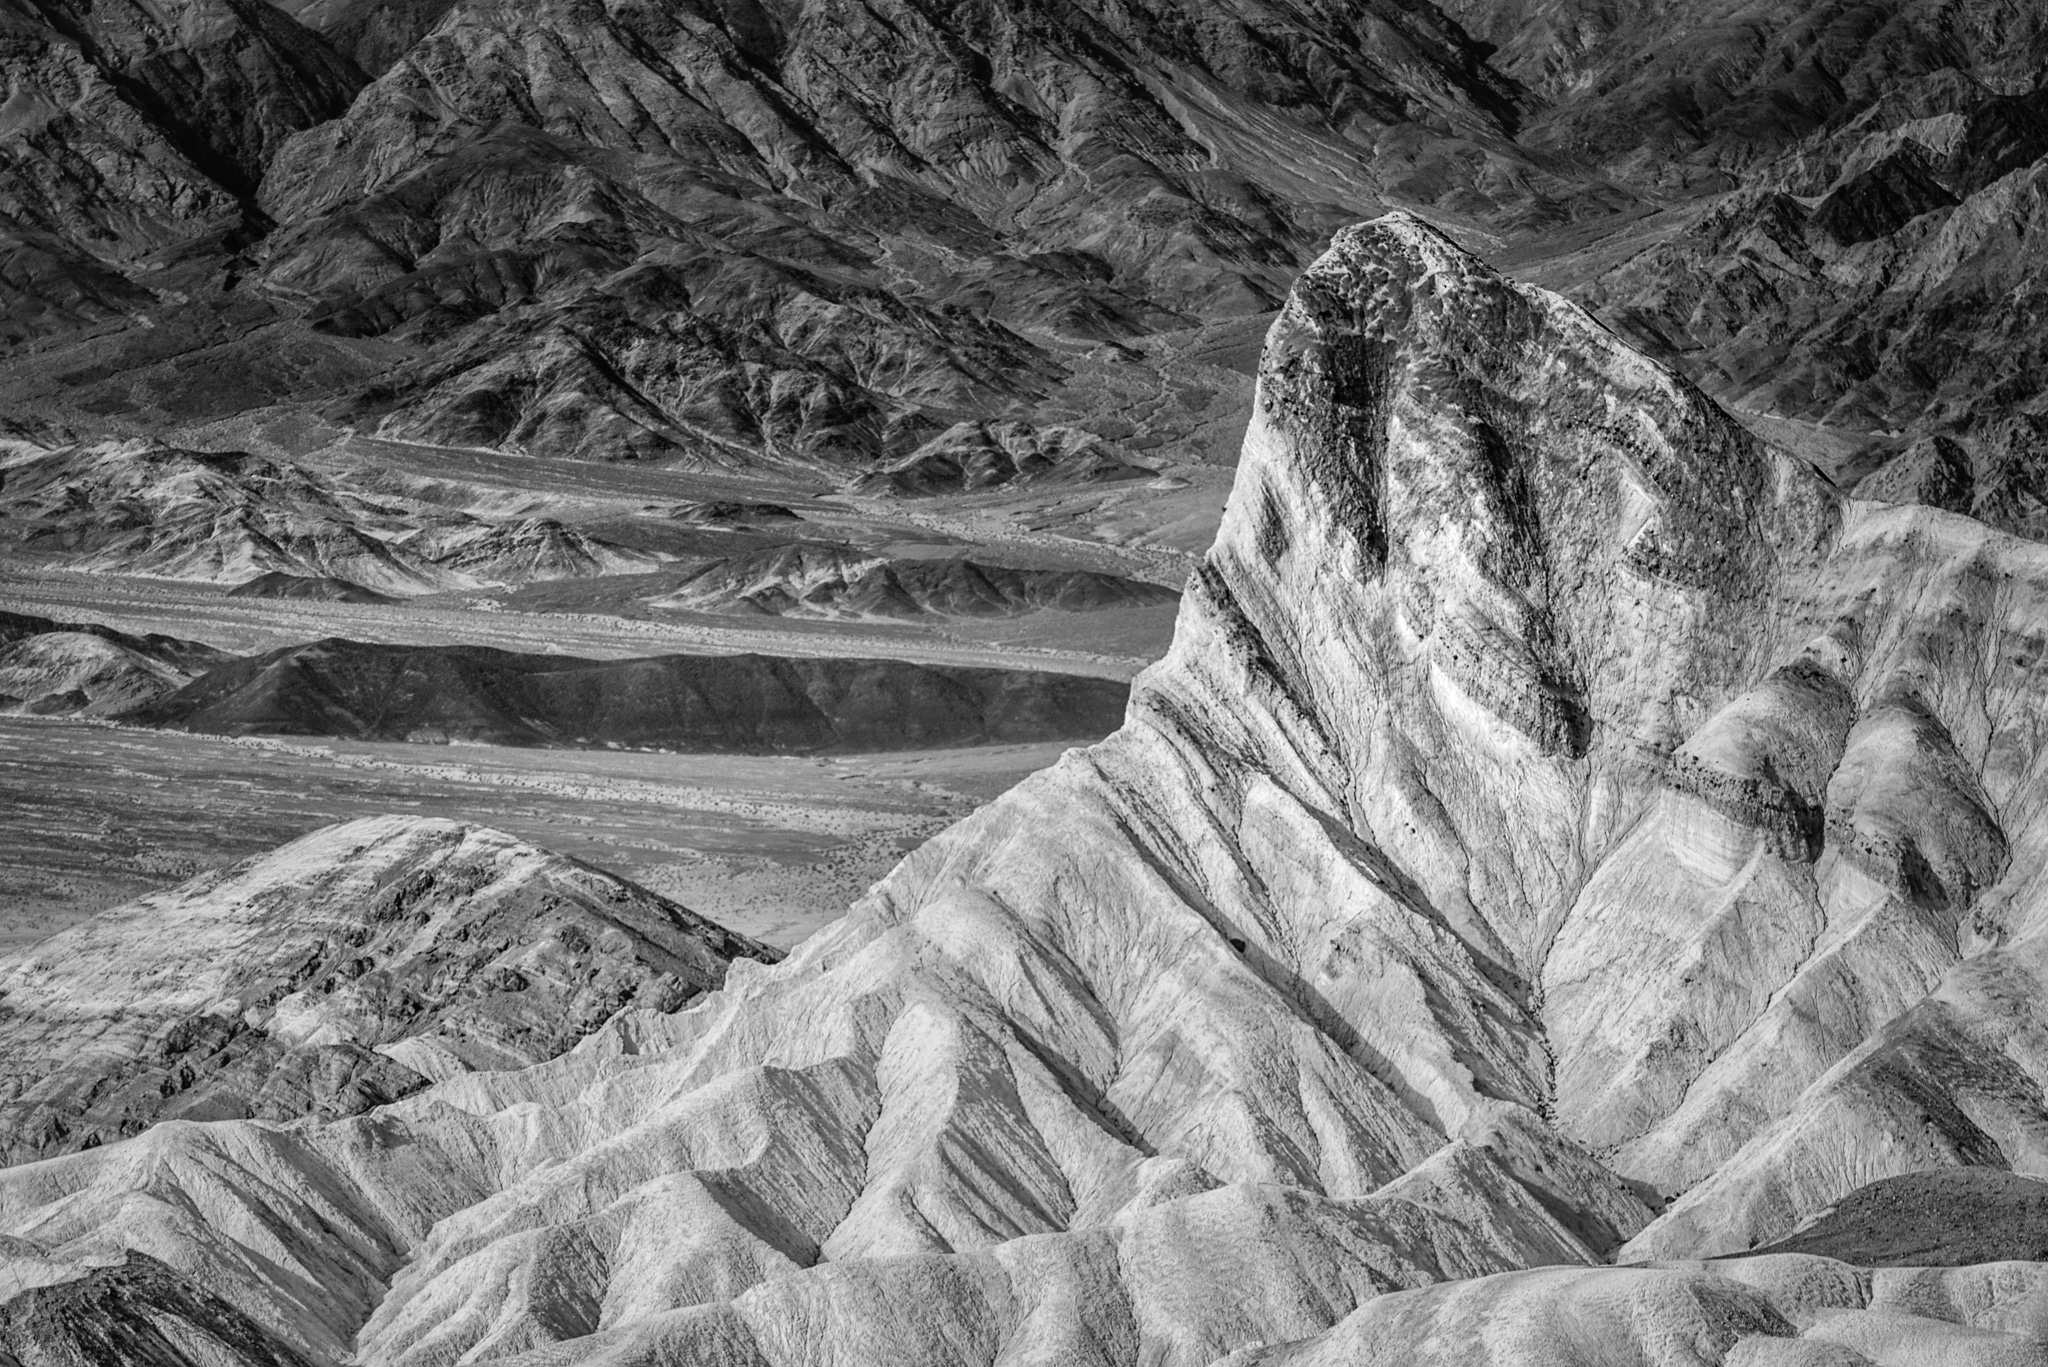 This black-and-white photograph features Manly Beacon. This viewpoint is accessible from the Zabriskie Point Overlook, which is accessible from Highway 190 in Death Valley National Park.